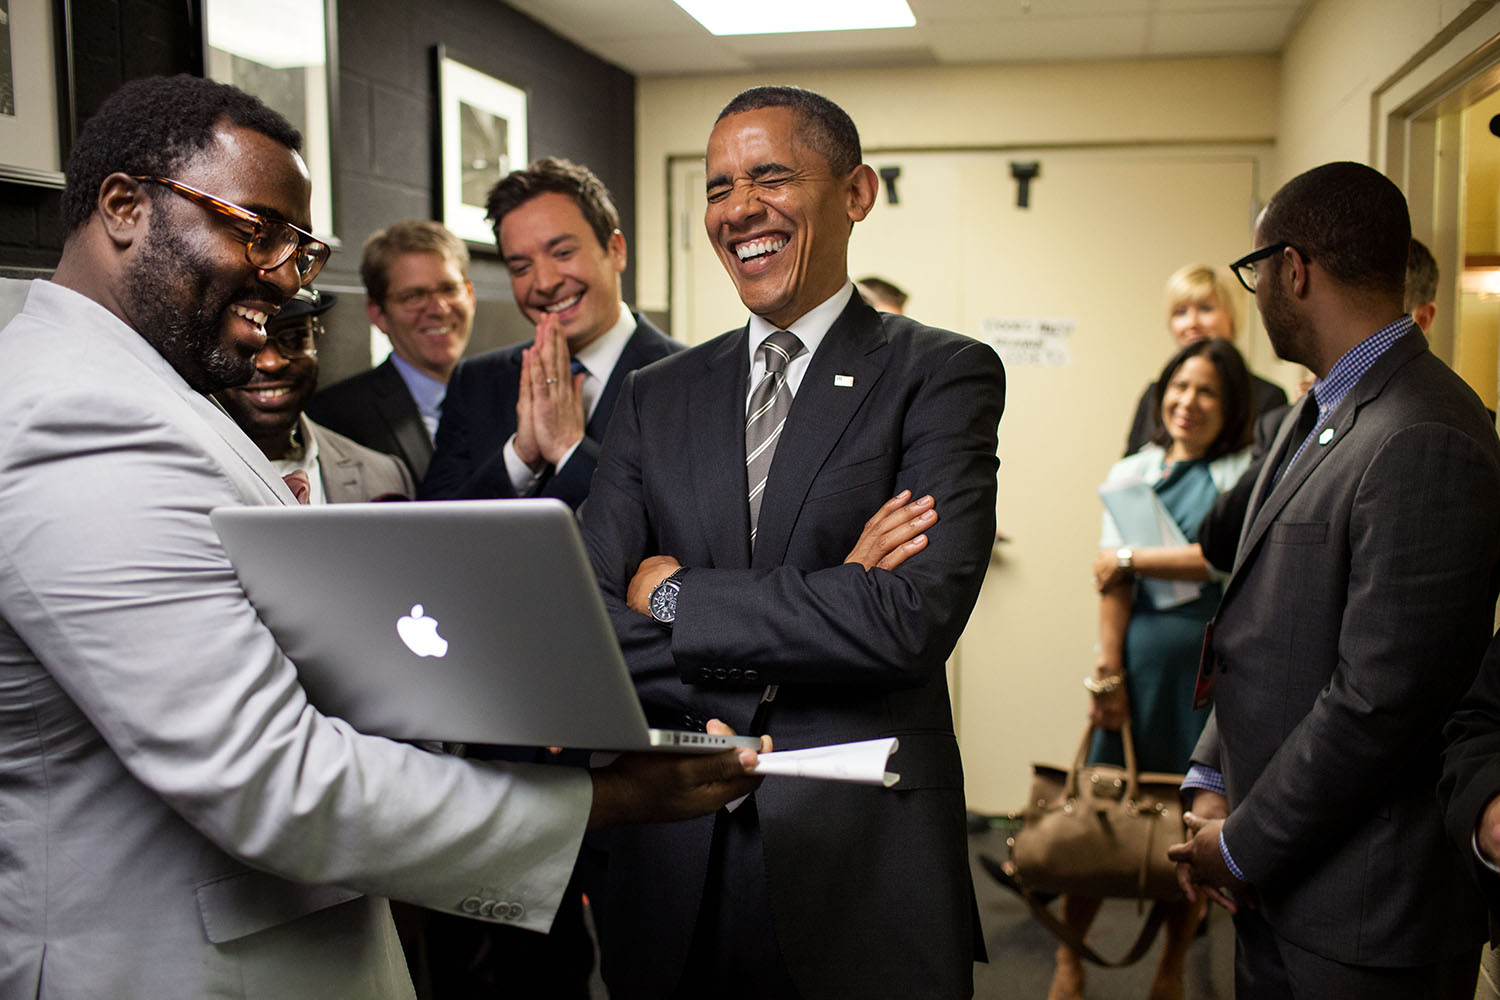 """April 24, 2012 """"We were backstage at the University of North Carolina in Chapel Hill for the President's appearance on 'Late Night with Jimmy Fallon.' The President let out a big laugh as he was being briefed by the producers and Mr. Fallon on the 'Slow Jam the News' segment."""" (Official White House Photo by Pete Souza) This official White House photograph is being made available only for publication by news organizations and/or for personal use printing by the subject(s) of the photograph. The photograph may not be manipulated in any way and may not be used in commercial or political materials, advertisements, emails, products, promotions that in any way suggests approval or endorsement of the President, the First Family, or the White House."""